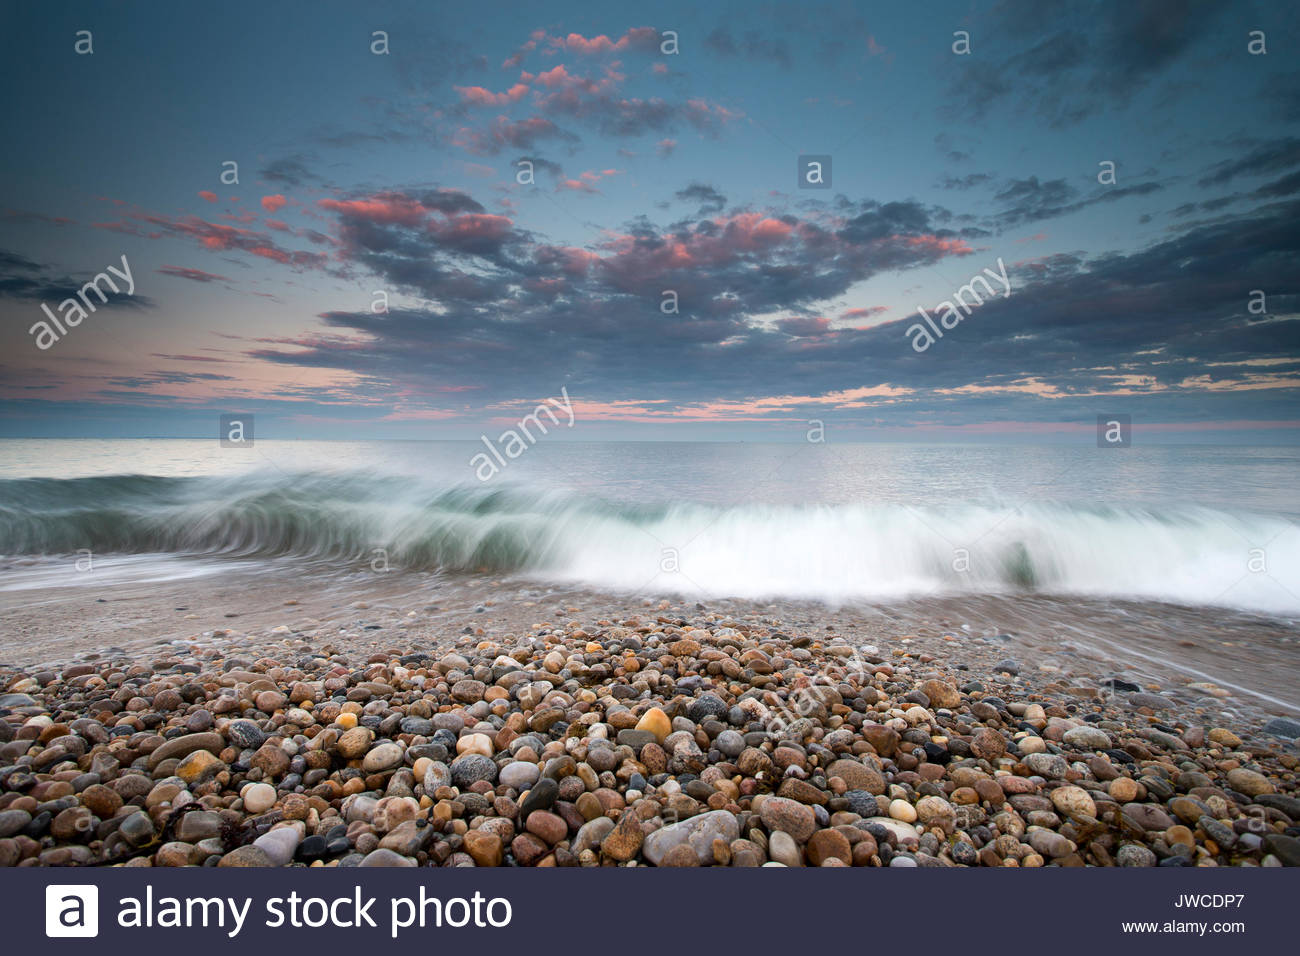 Waves wash ashore under a gentle sky. - Stock Image